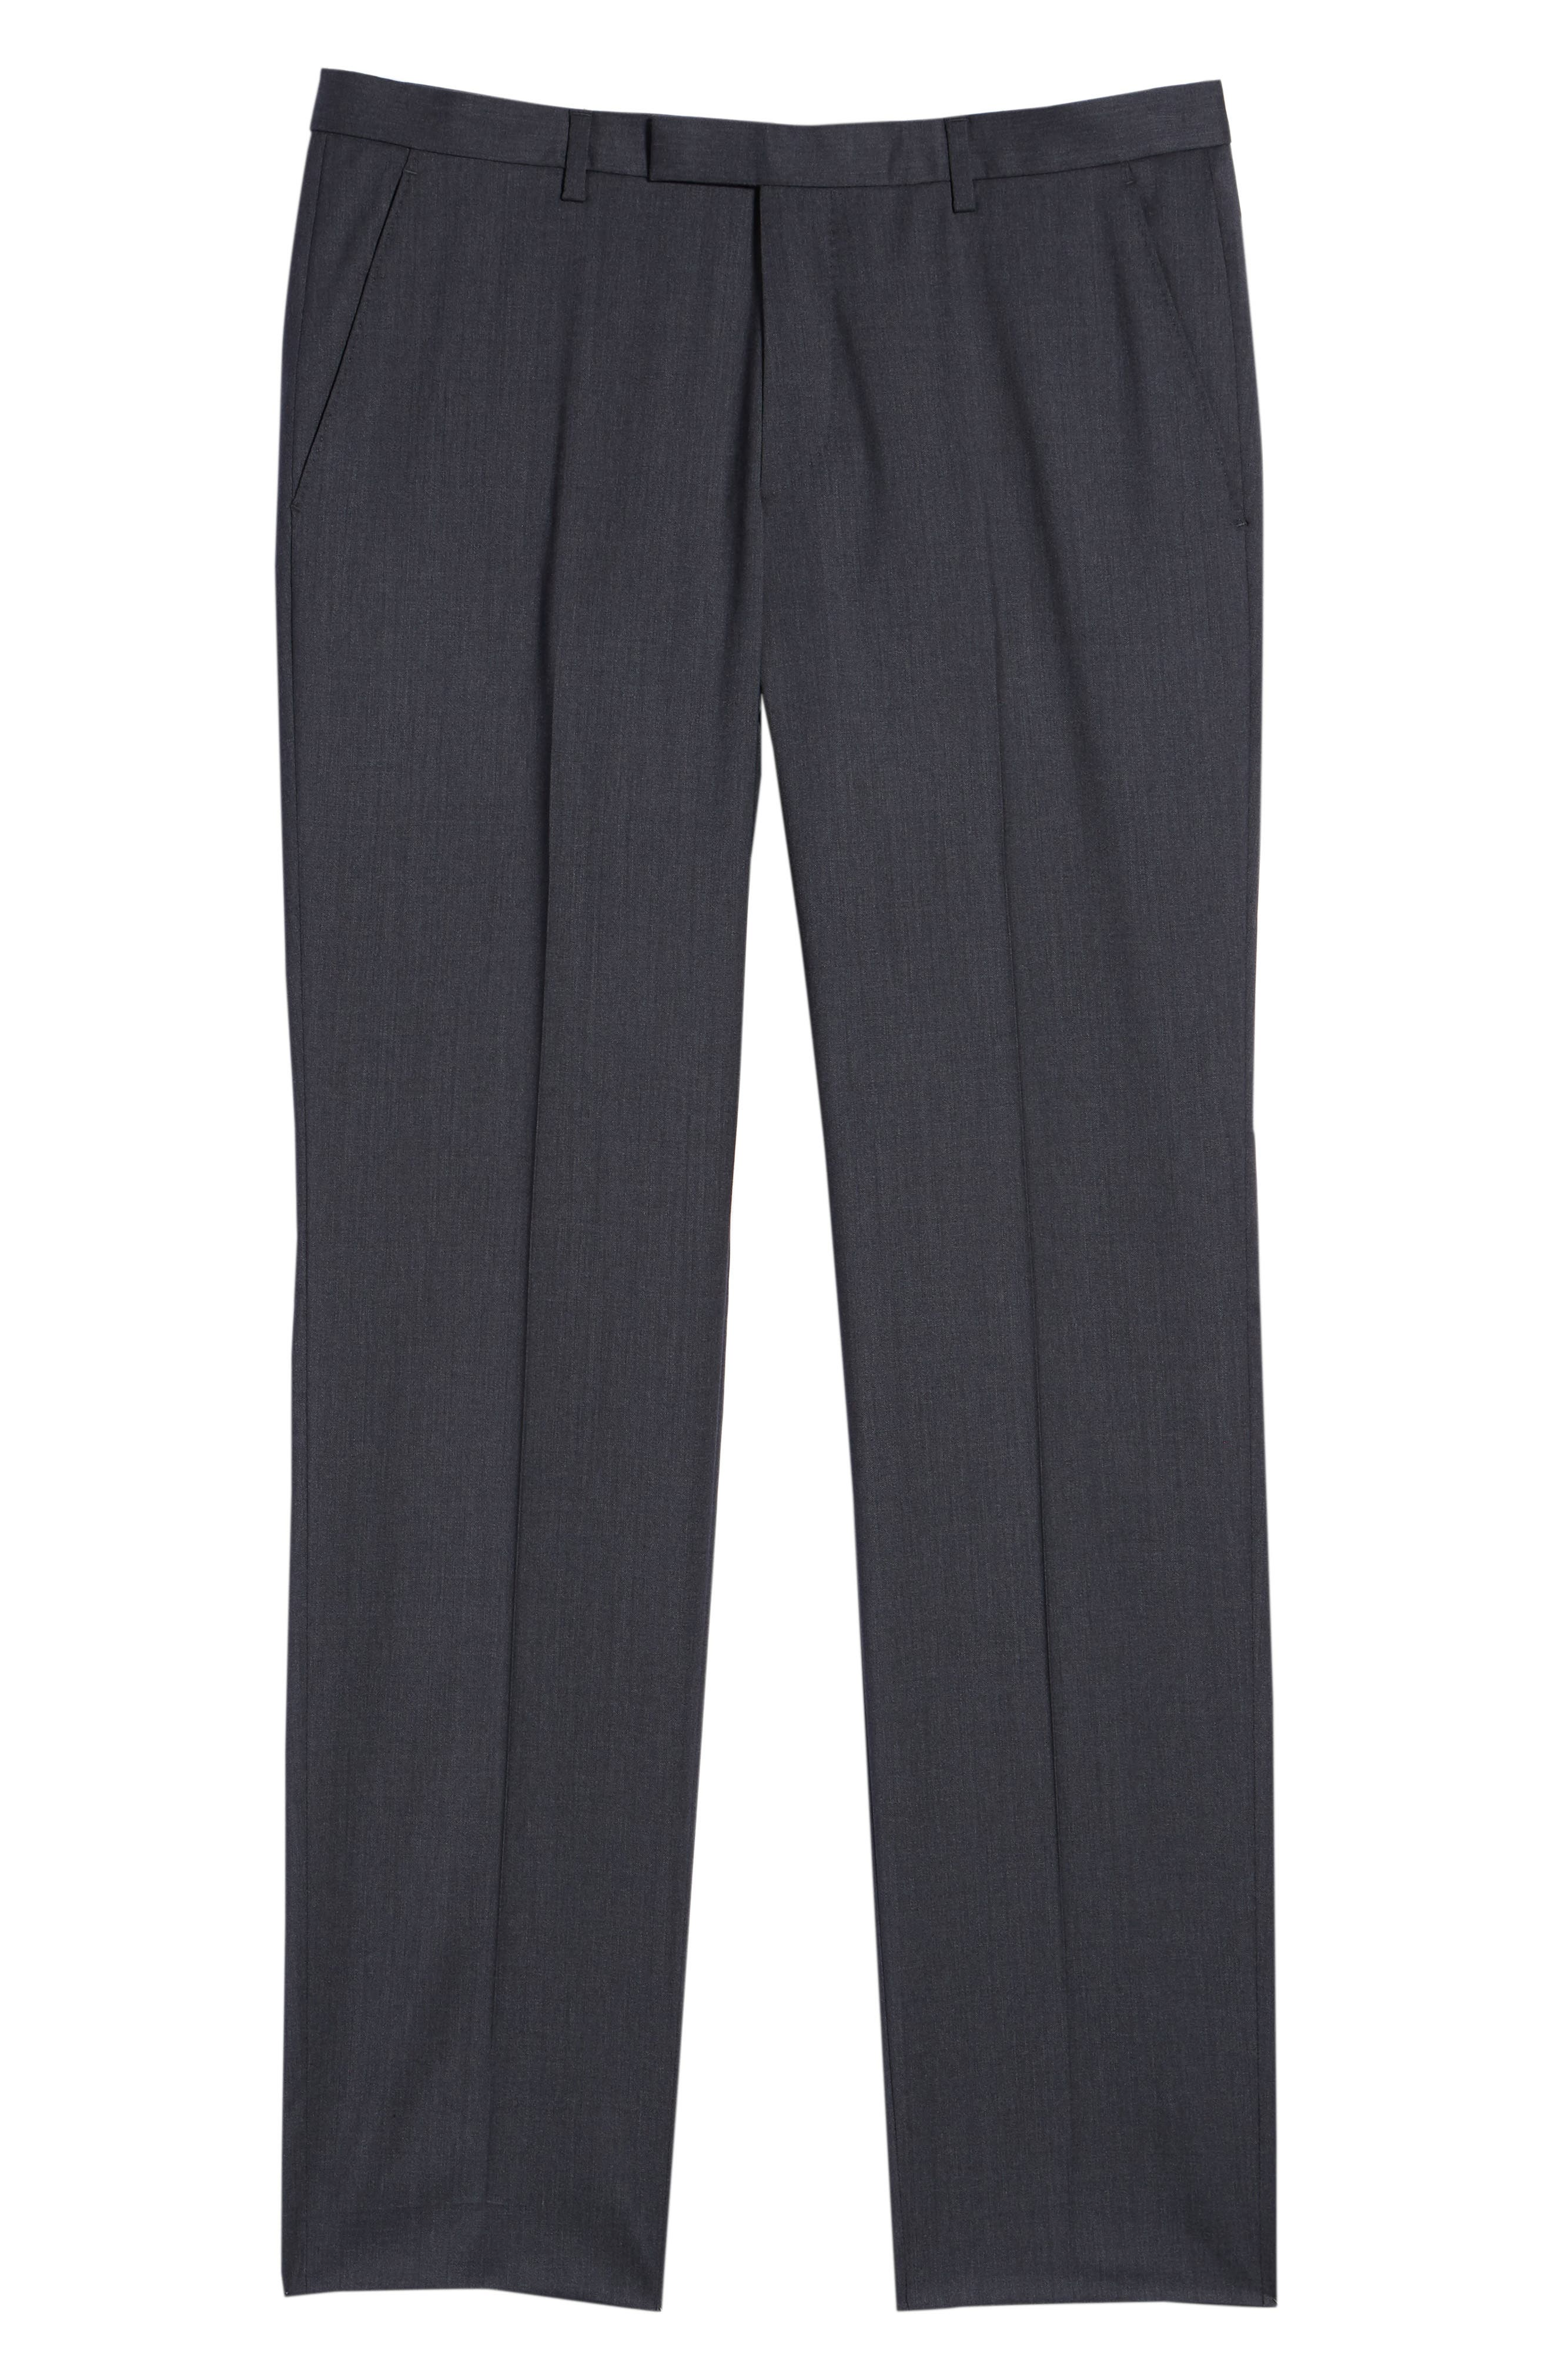 Leenon Flat Front Regular Fit Solid Wool Trousers,                             Alternate thumbnail 6, color,                             CHARCOAL